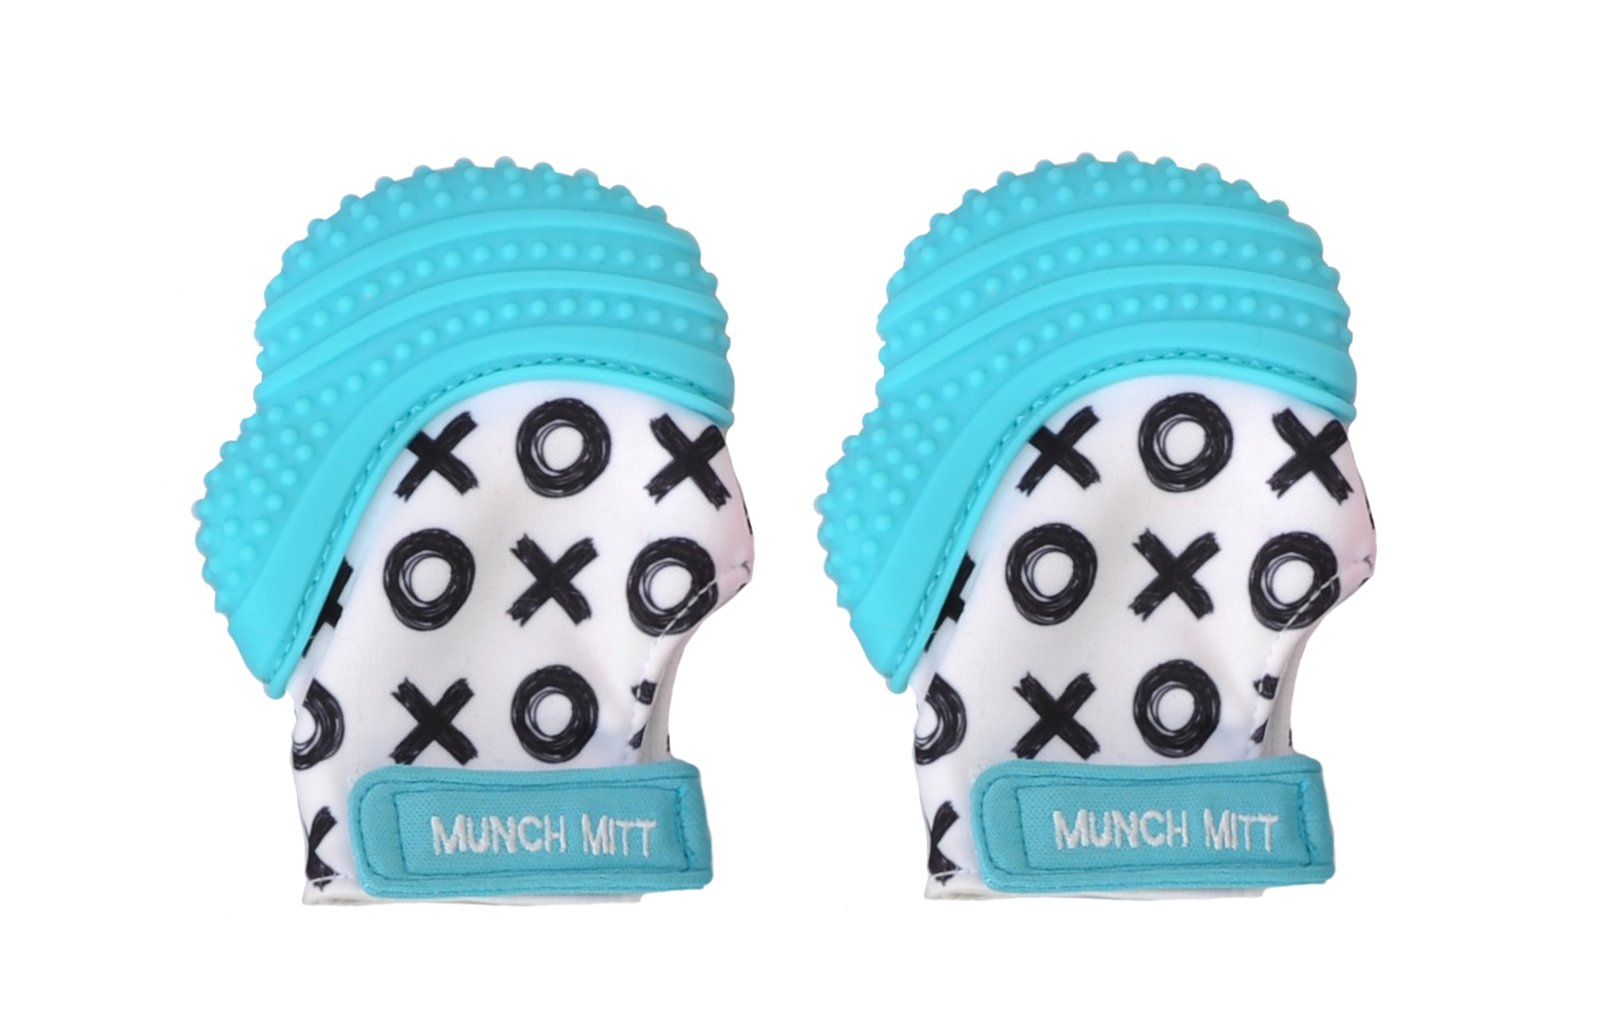 Munch Mitt Trendy Collection Teething Mitten- Original Mom Invented Teething Toy- Teether Stays on Babys Hand for Pain Relief- Ideal Baby Shower Gift with Handy Travel/Laundry Bag- 2 pk Aqua Blue XO